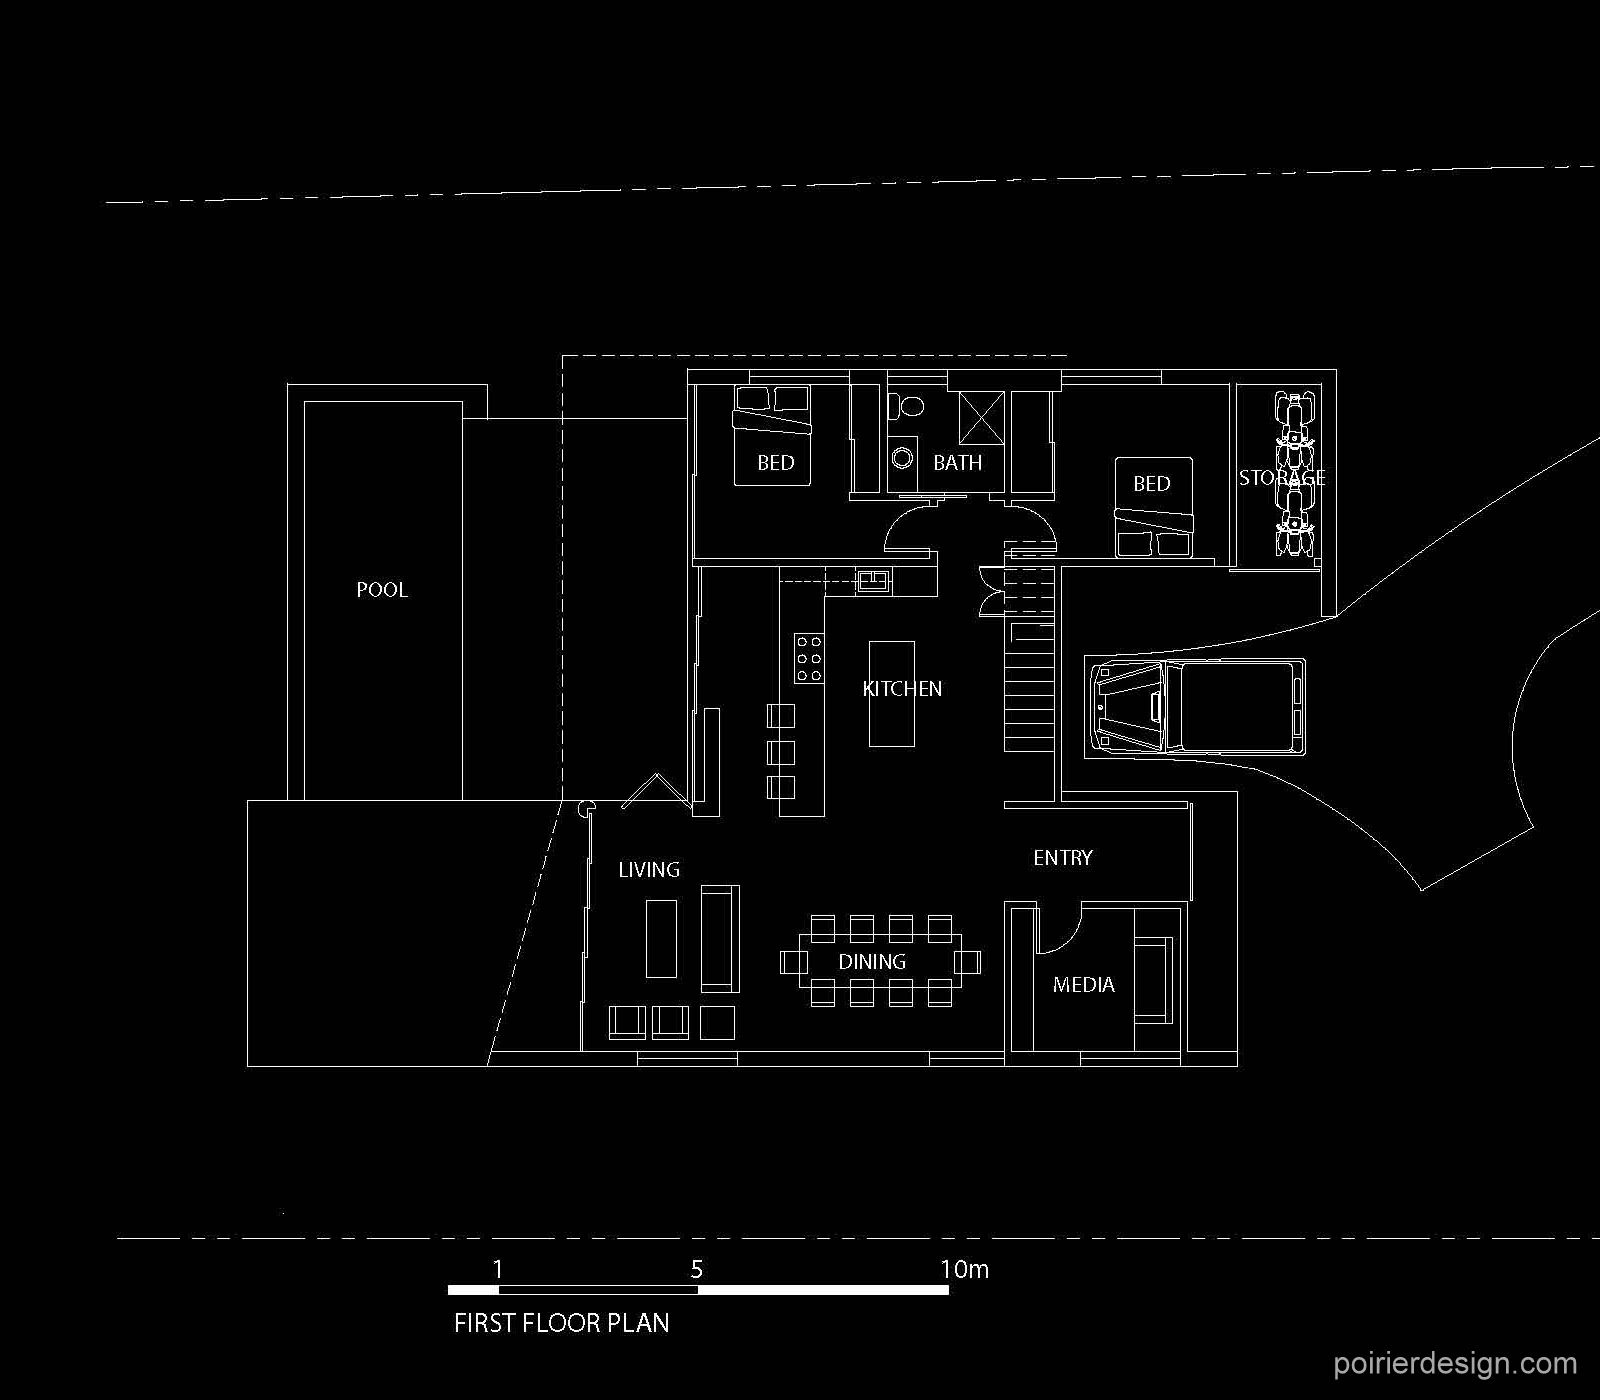 modern architecture, beach house, costa rican architecture ... on icelandic house plans, bahamian house plans, nigerian house plans, german house plans, peruvian house plans, welsh house plans, italian house plans, indian house plans, panamanian house plans, spanish house plans, mexican house plans, ghanian house plans, canadian house plans, polish house plans, moroccan house plans, hungarian house plans, dutch house plans, honduran house plans, belgian house plans,